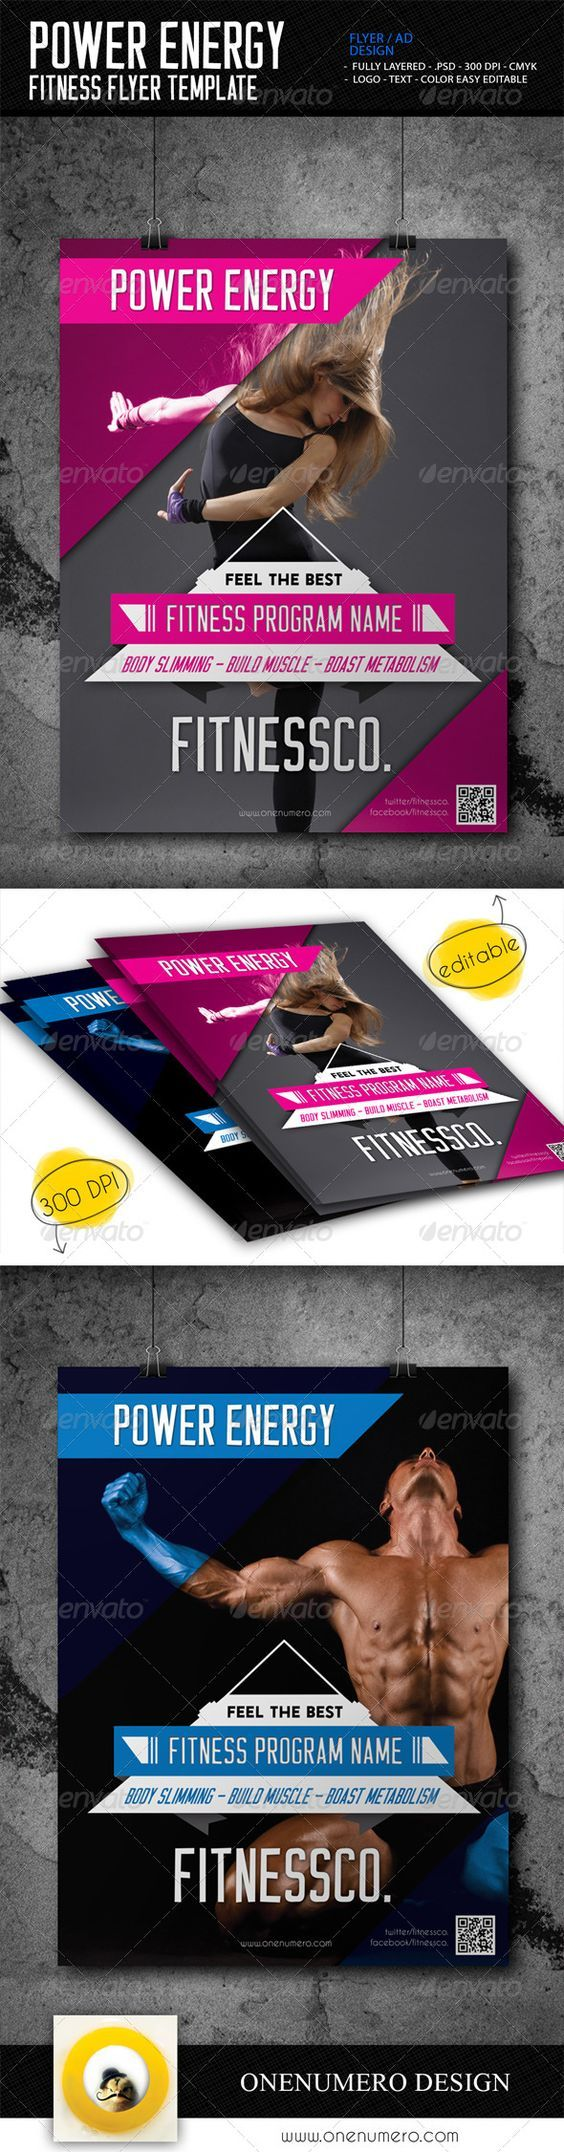 Power Energy Fitness Flyer Template - Sports Events Maybe buy it http://graphicriver.net/item/power-energy-fitness-flyer-template/7662781?WT.ac=portfolio&WT.seg_1=portfolio&WT.z_author=onenumero: